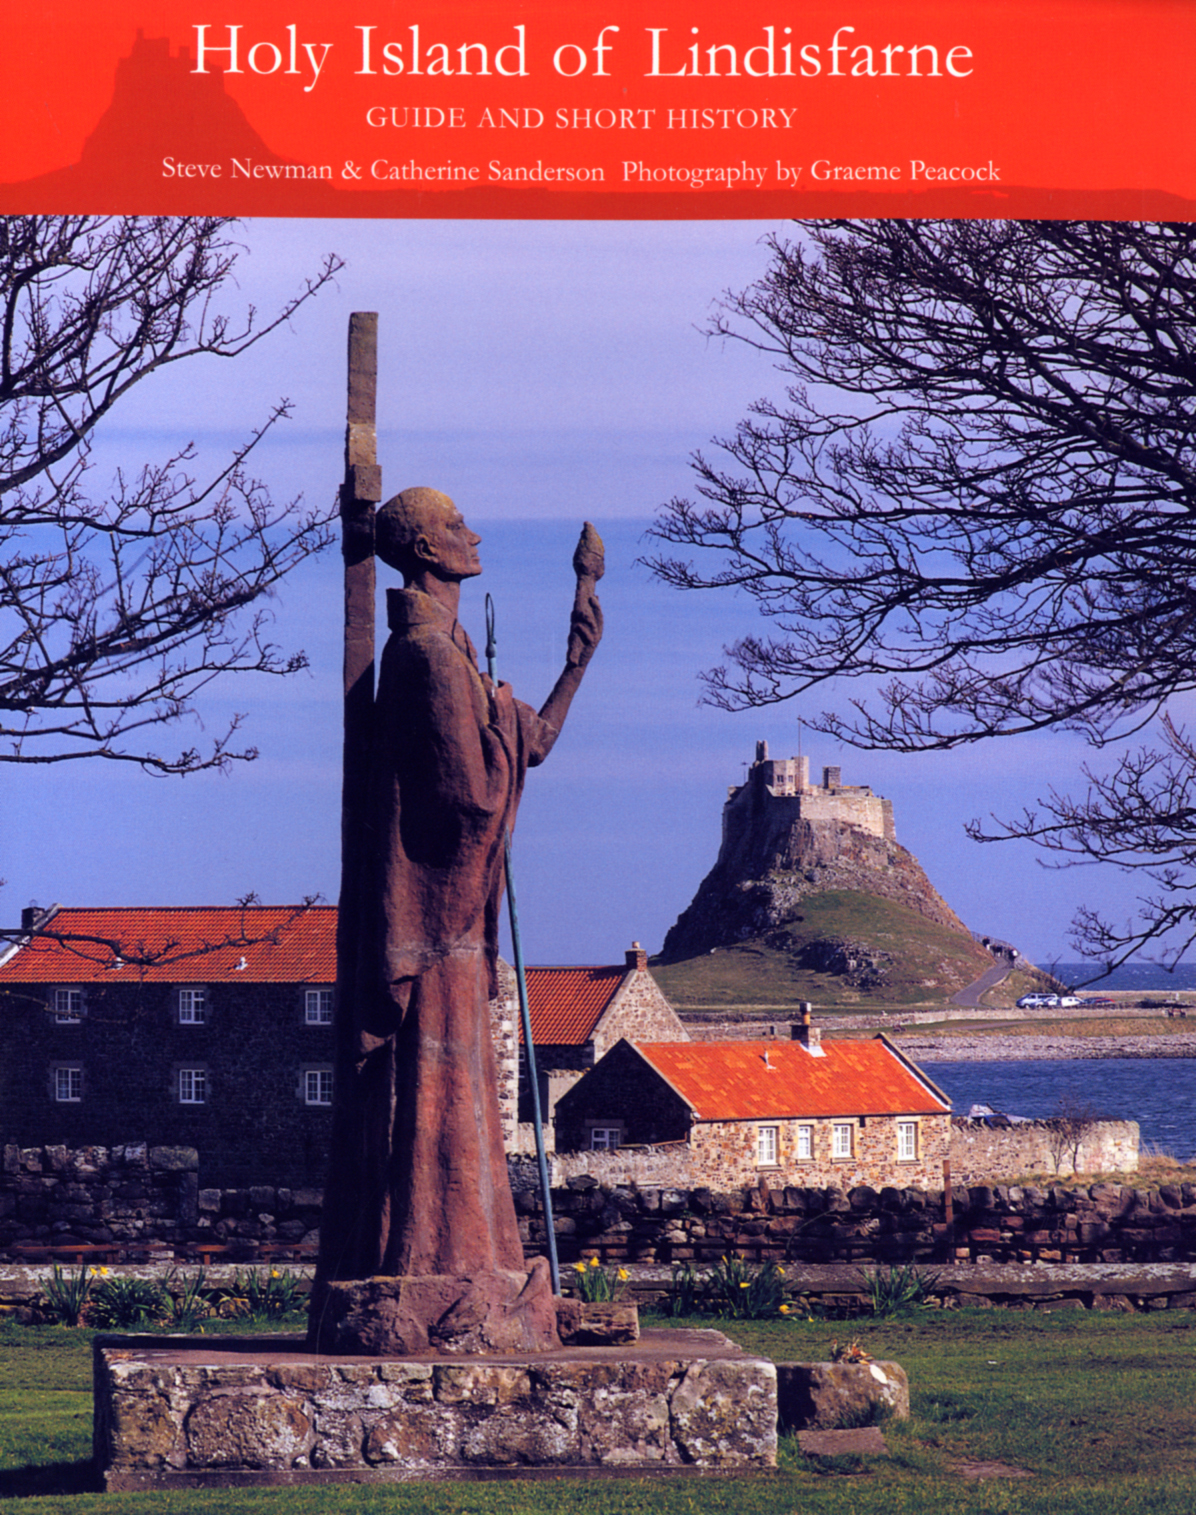 Holy Island of Lindisfarne – Guide and Short History